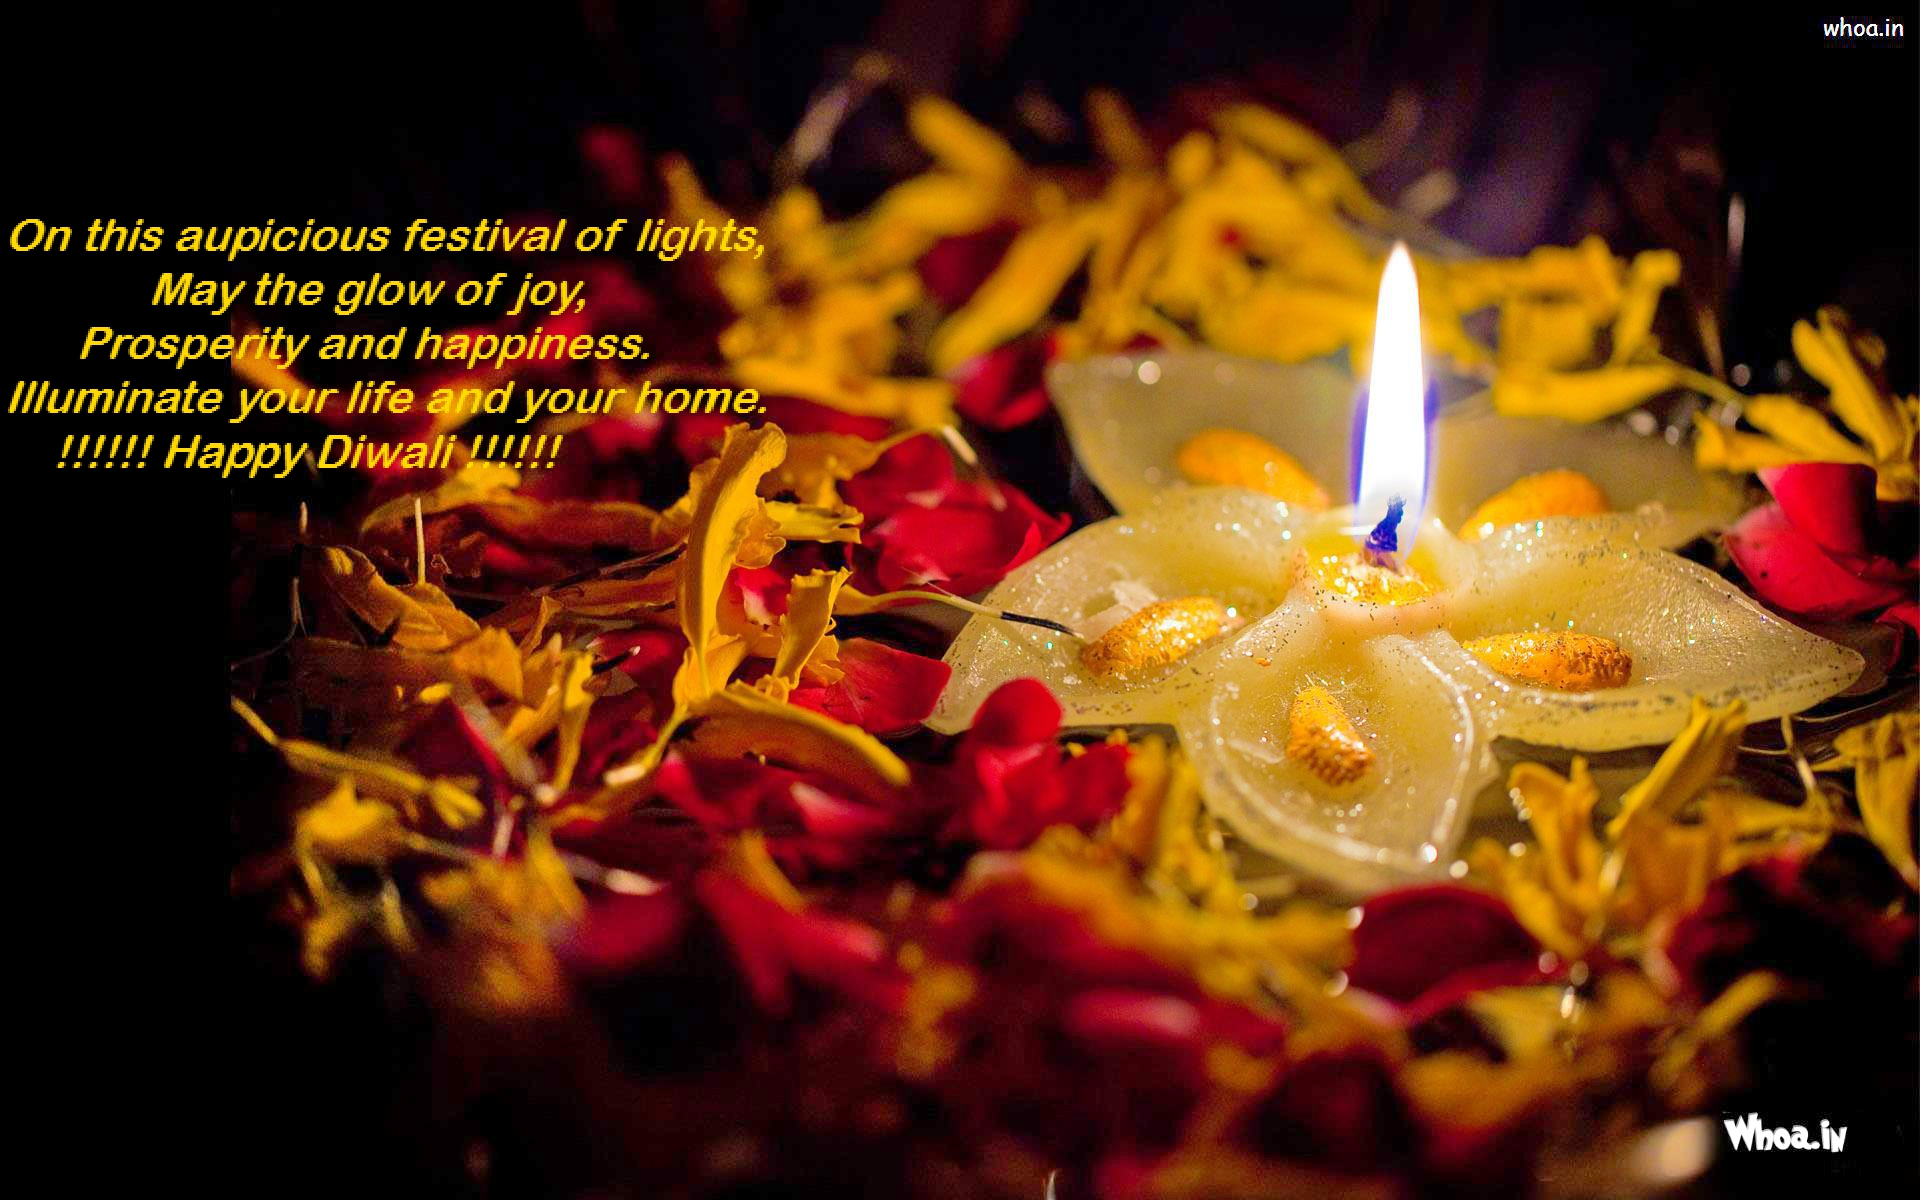 Happy Diwali Wallpapers And Backgrounds: Happy Diwali Wallpapers With Sms & Quotes